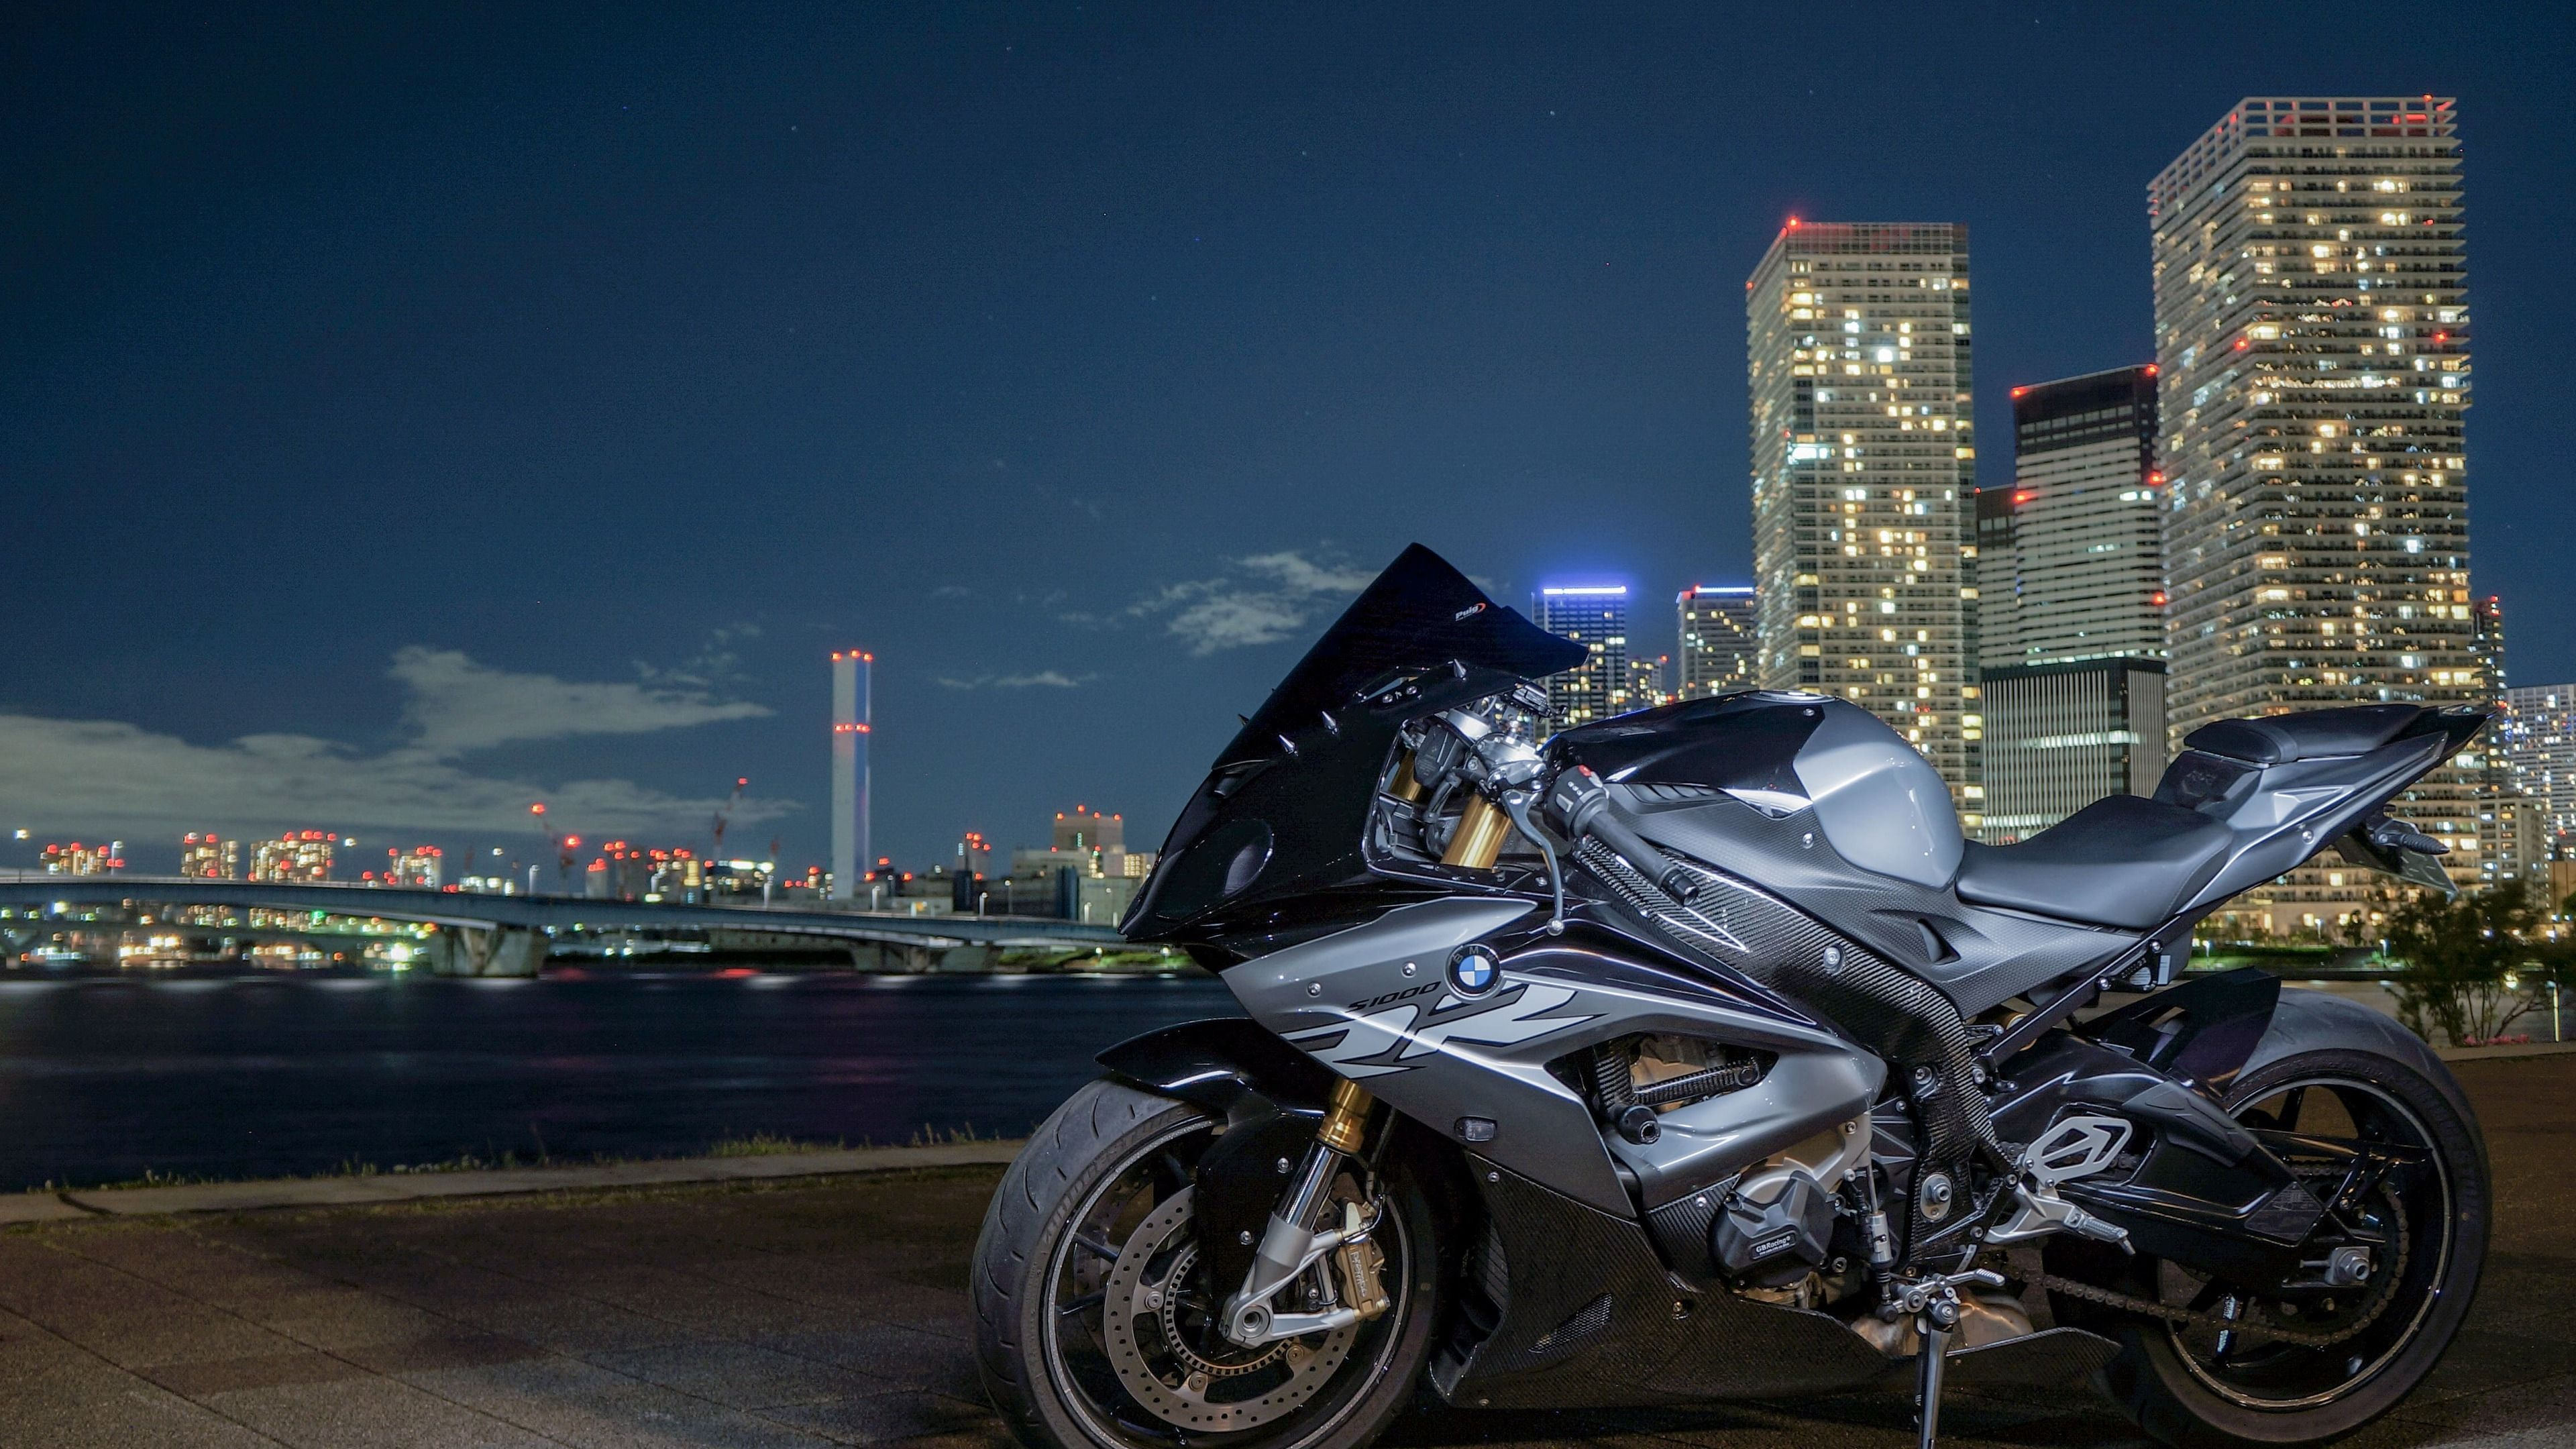 Bmw S1000rr 4k Hd Wallpapers Bmw Wallpapers Bmw S1000rr Wallpapers Bikes Wallpapers 5k Wallpapers 4k Wallpapers Bmw S1000rr Bmw Wallpapers Bmw